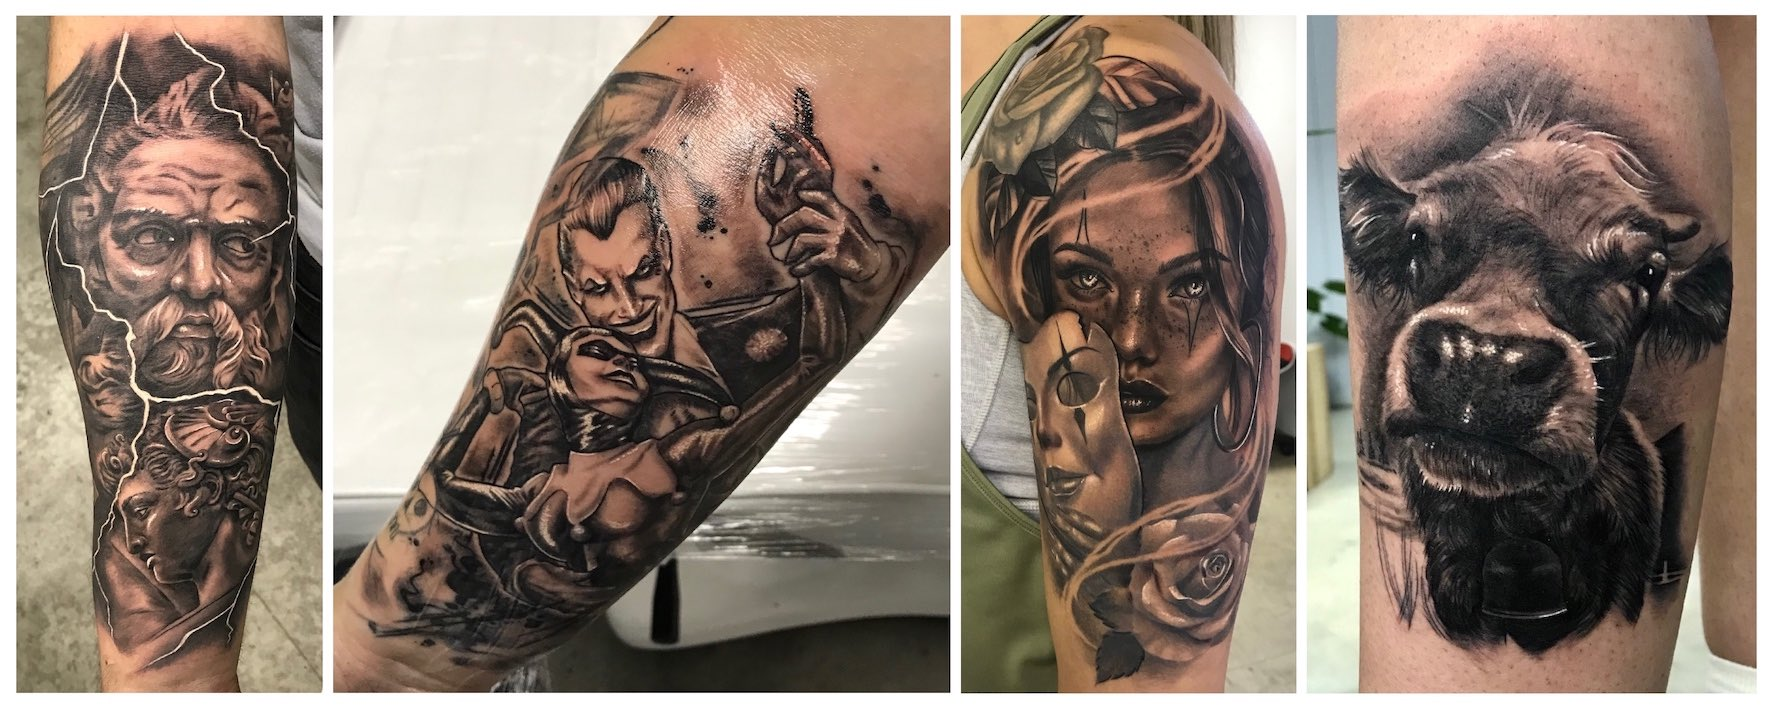 A selection of tattoos done by Lileen van den Berg